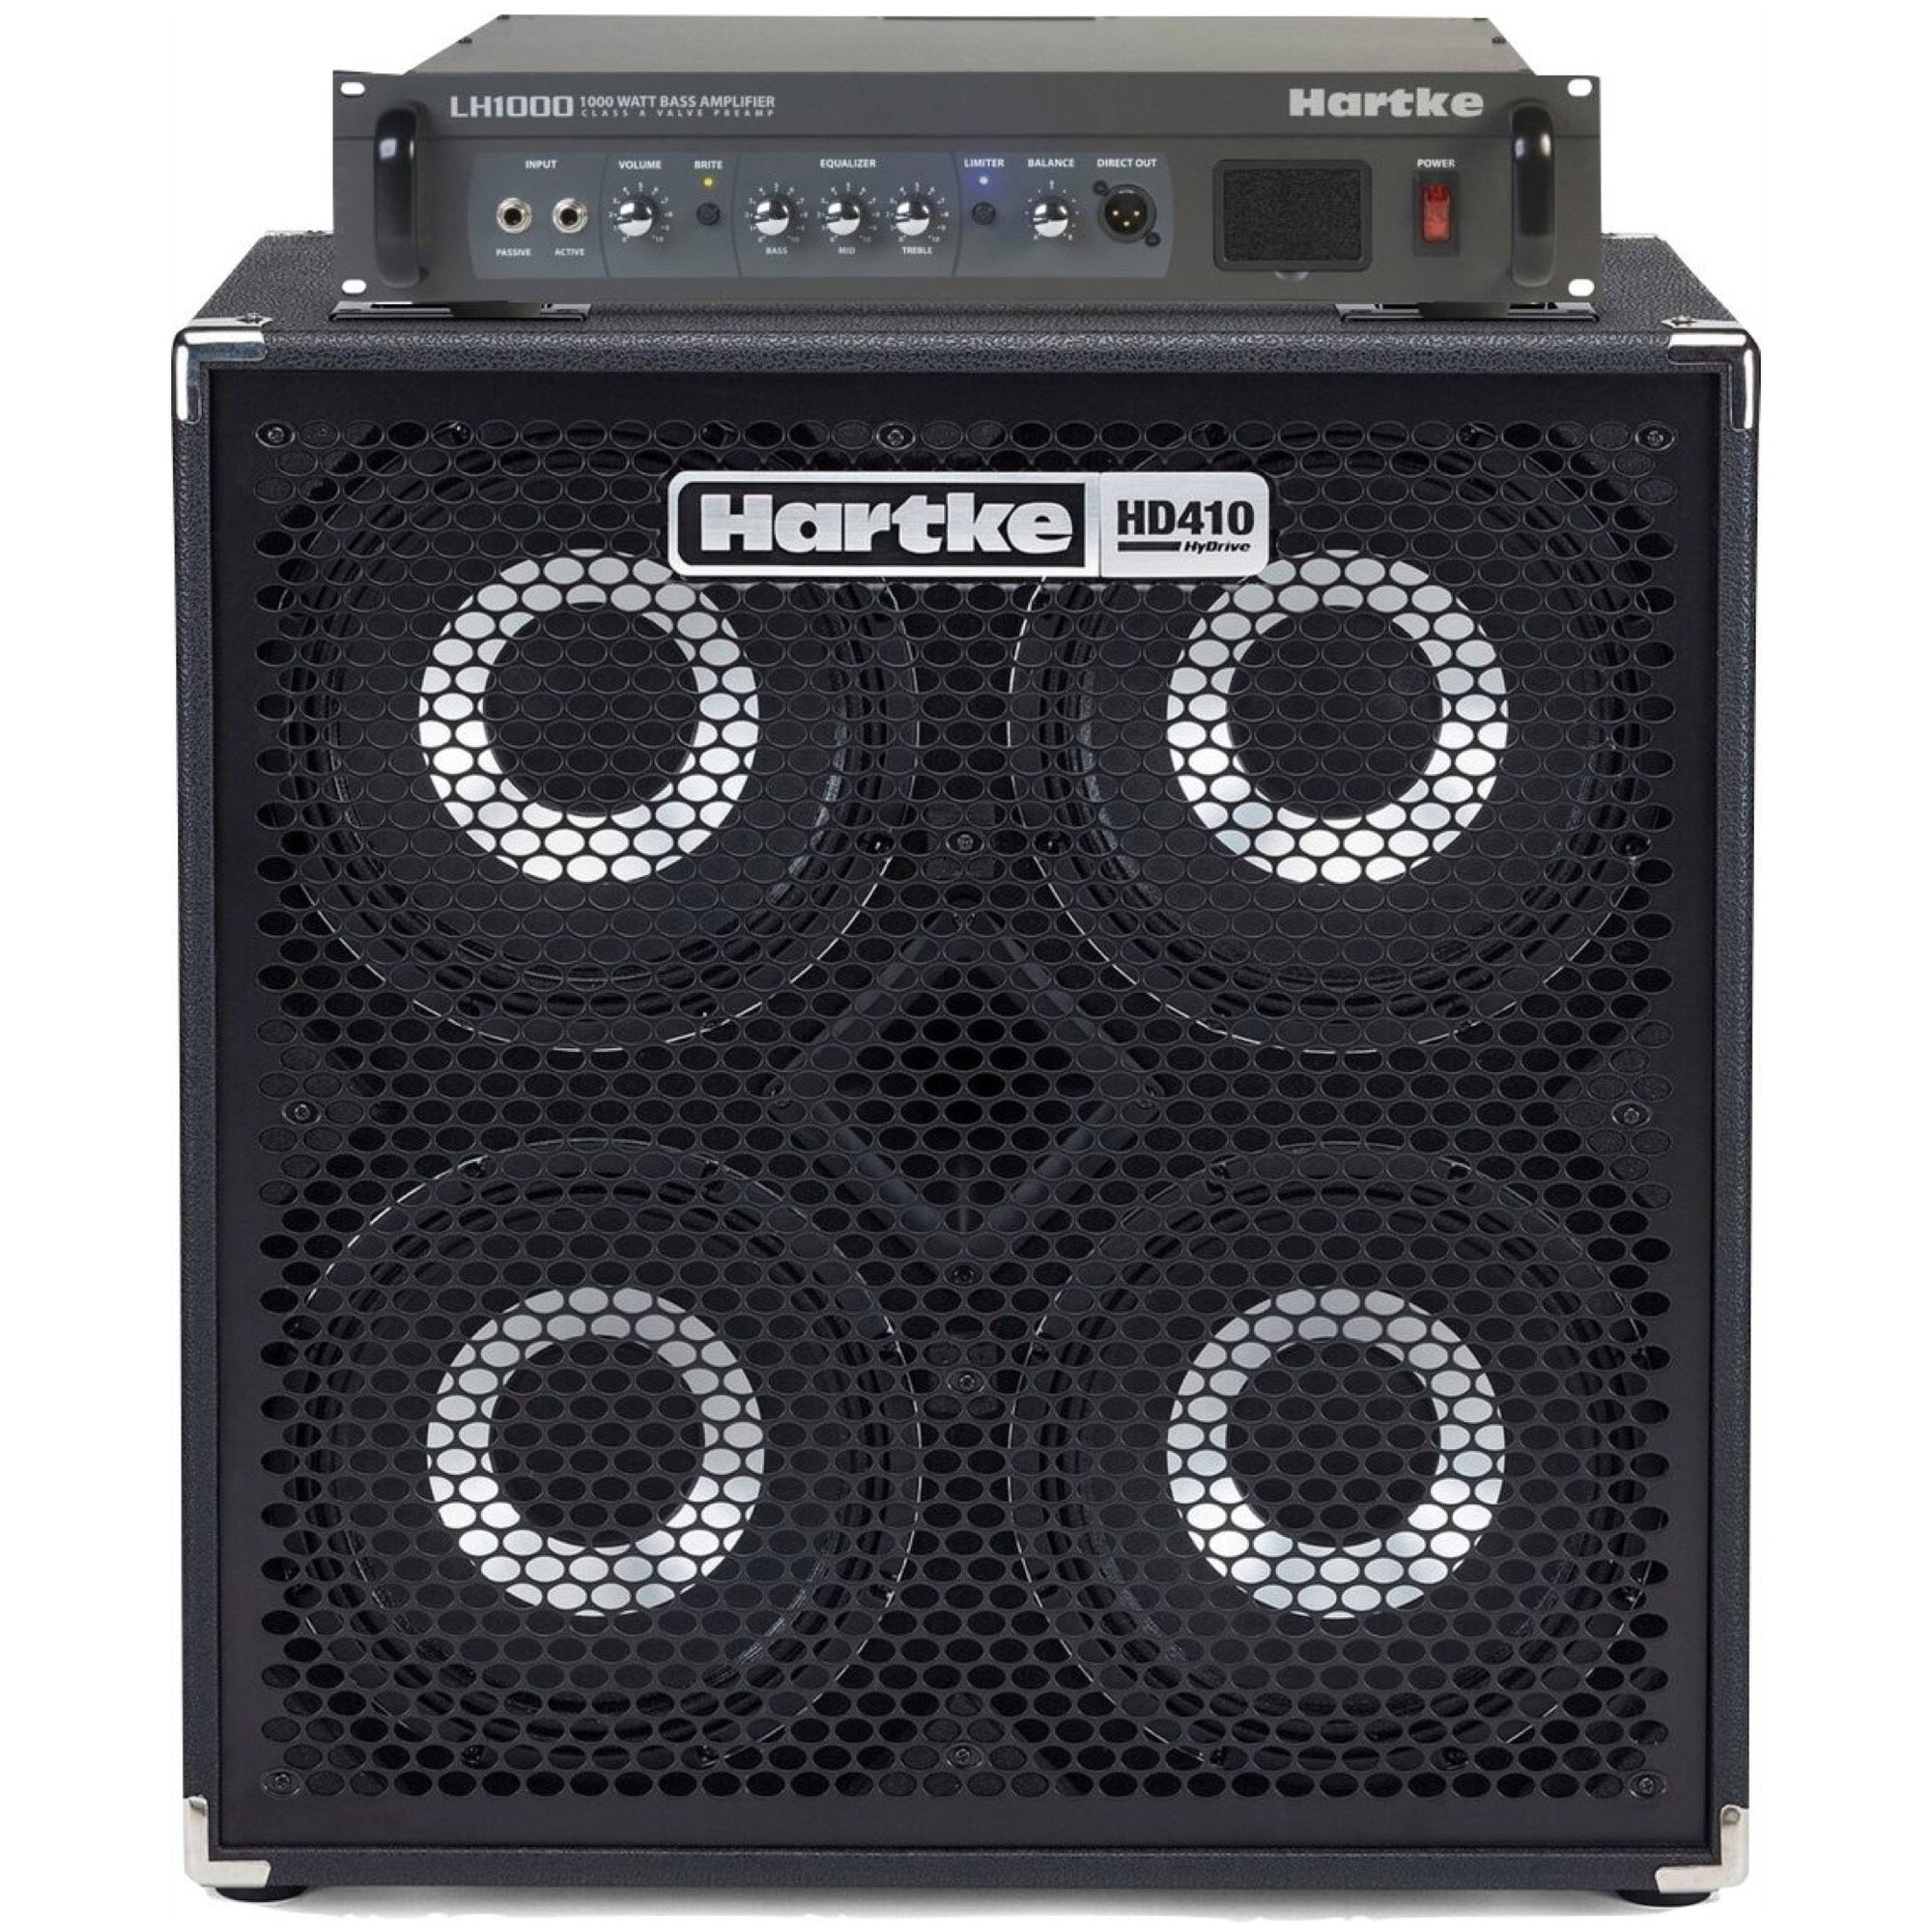 Hartke LH1000 Bass Head with HD410 Bass Cabinet Half Stack Pack